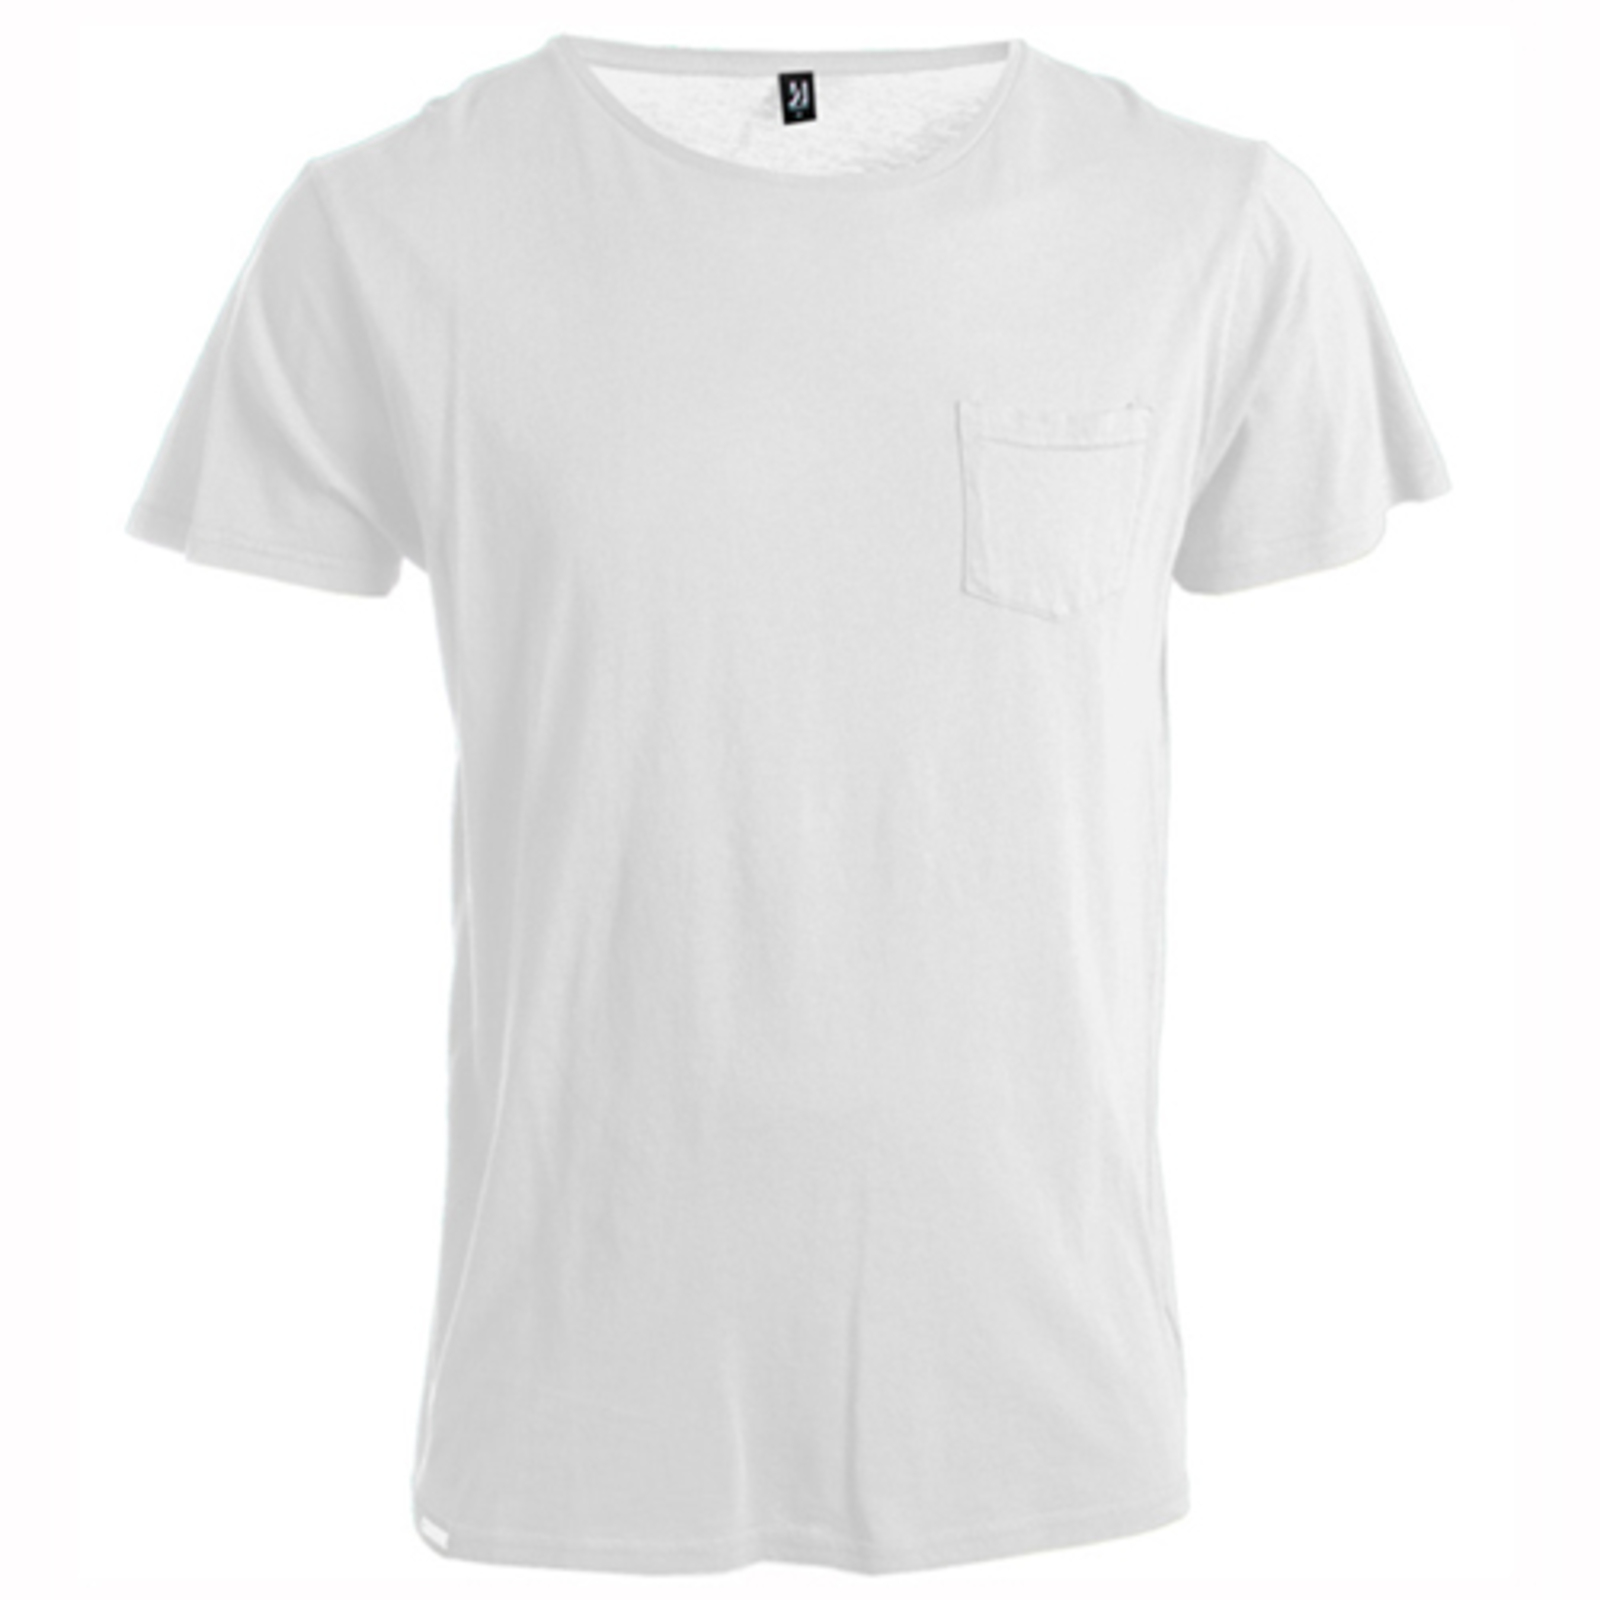 Find great deals on eBay for mens white t shirts large. Shop with confidence.